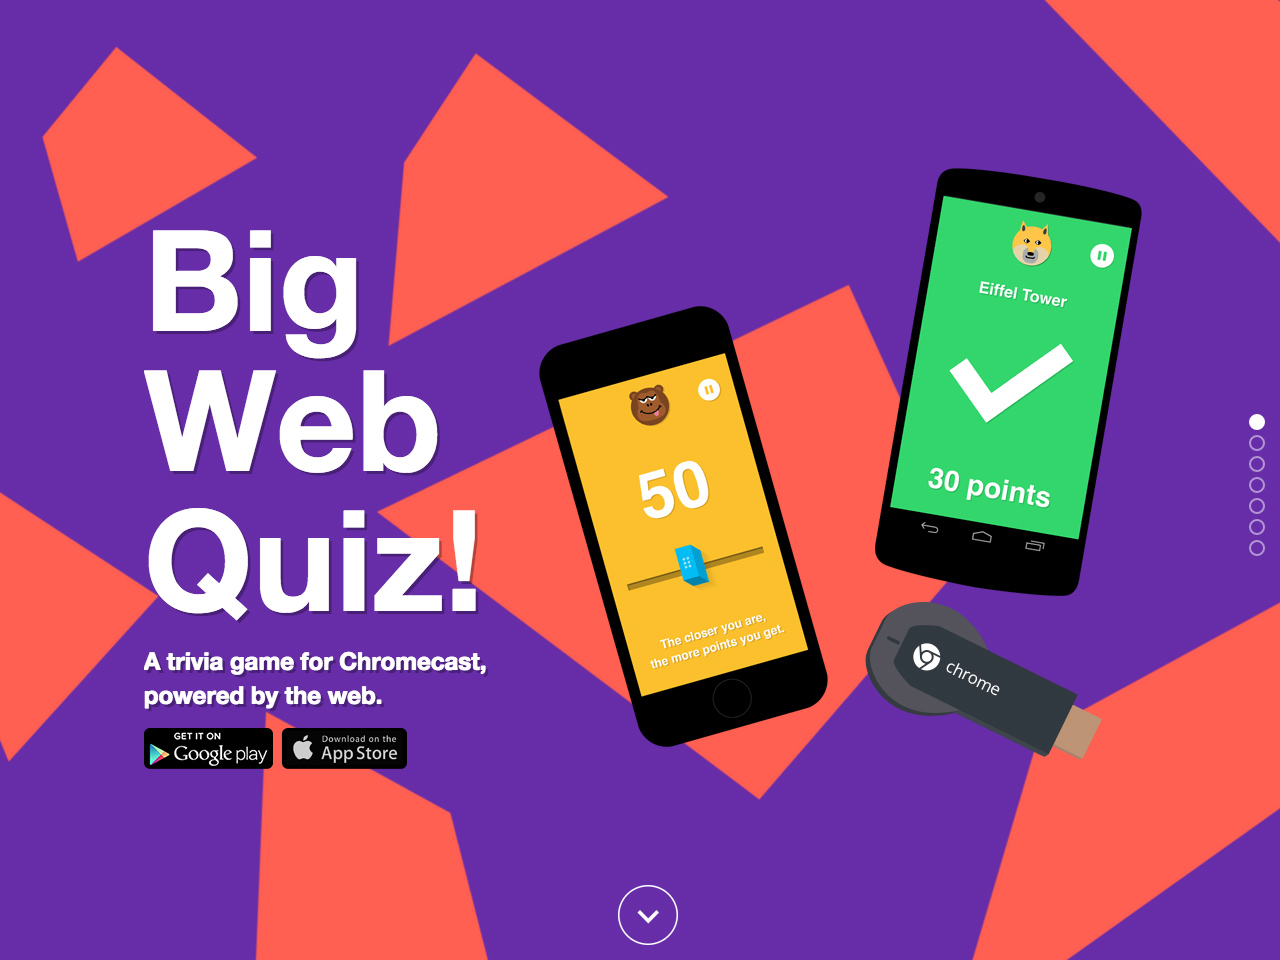 Big Web Quiz for Chromecast